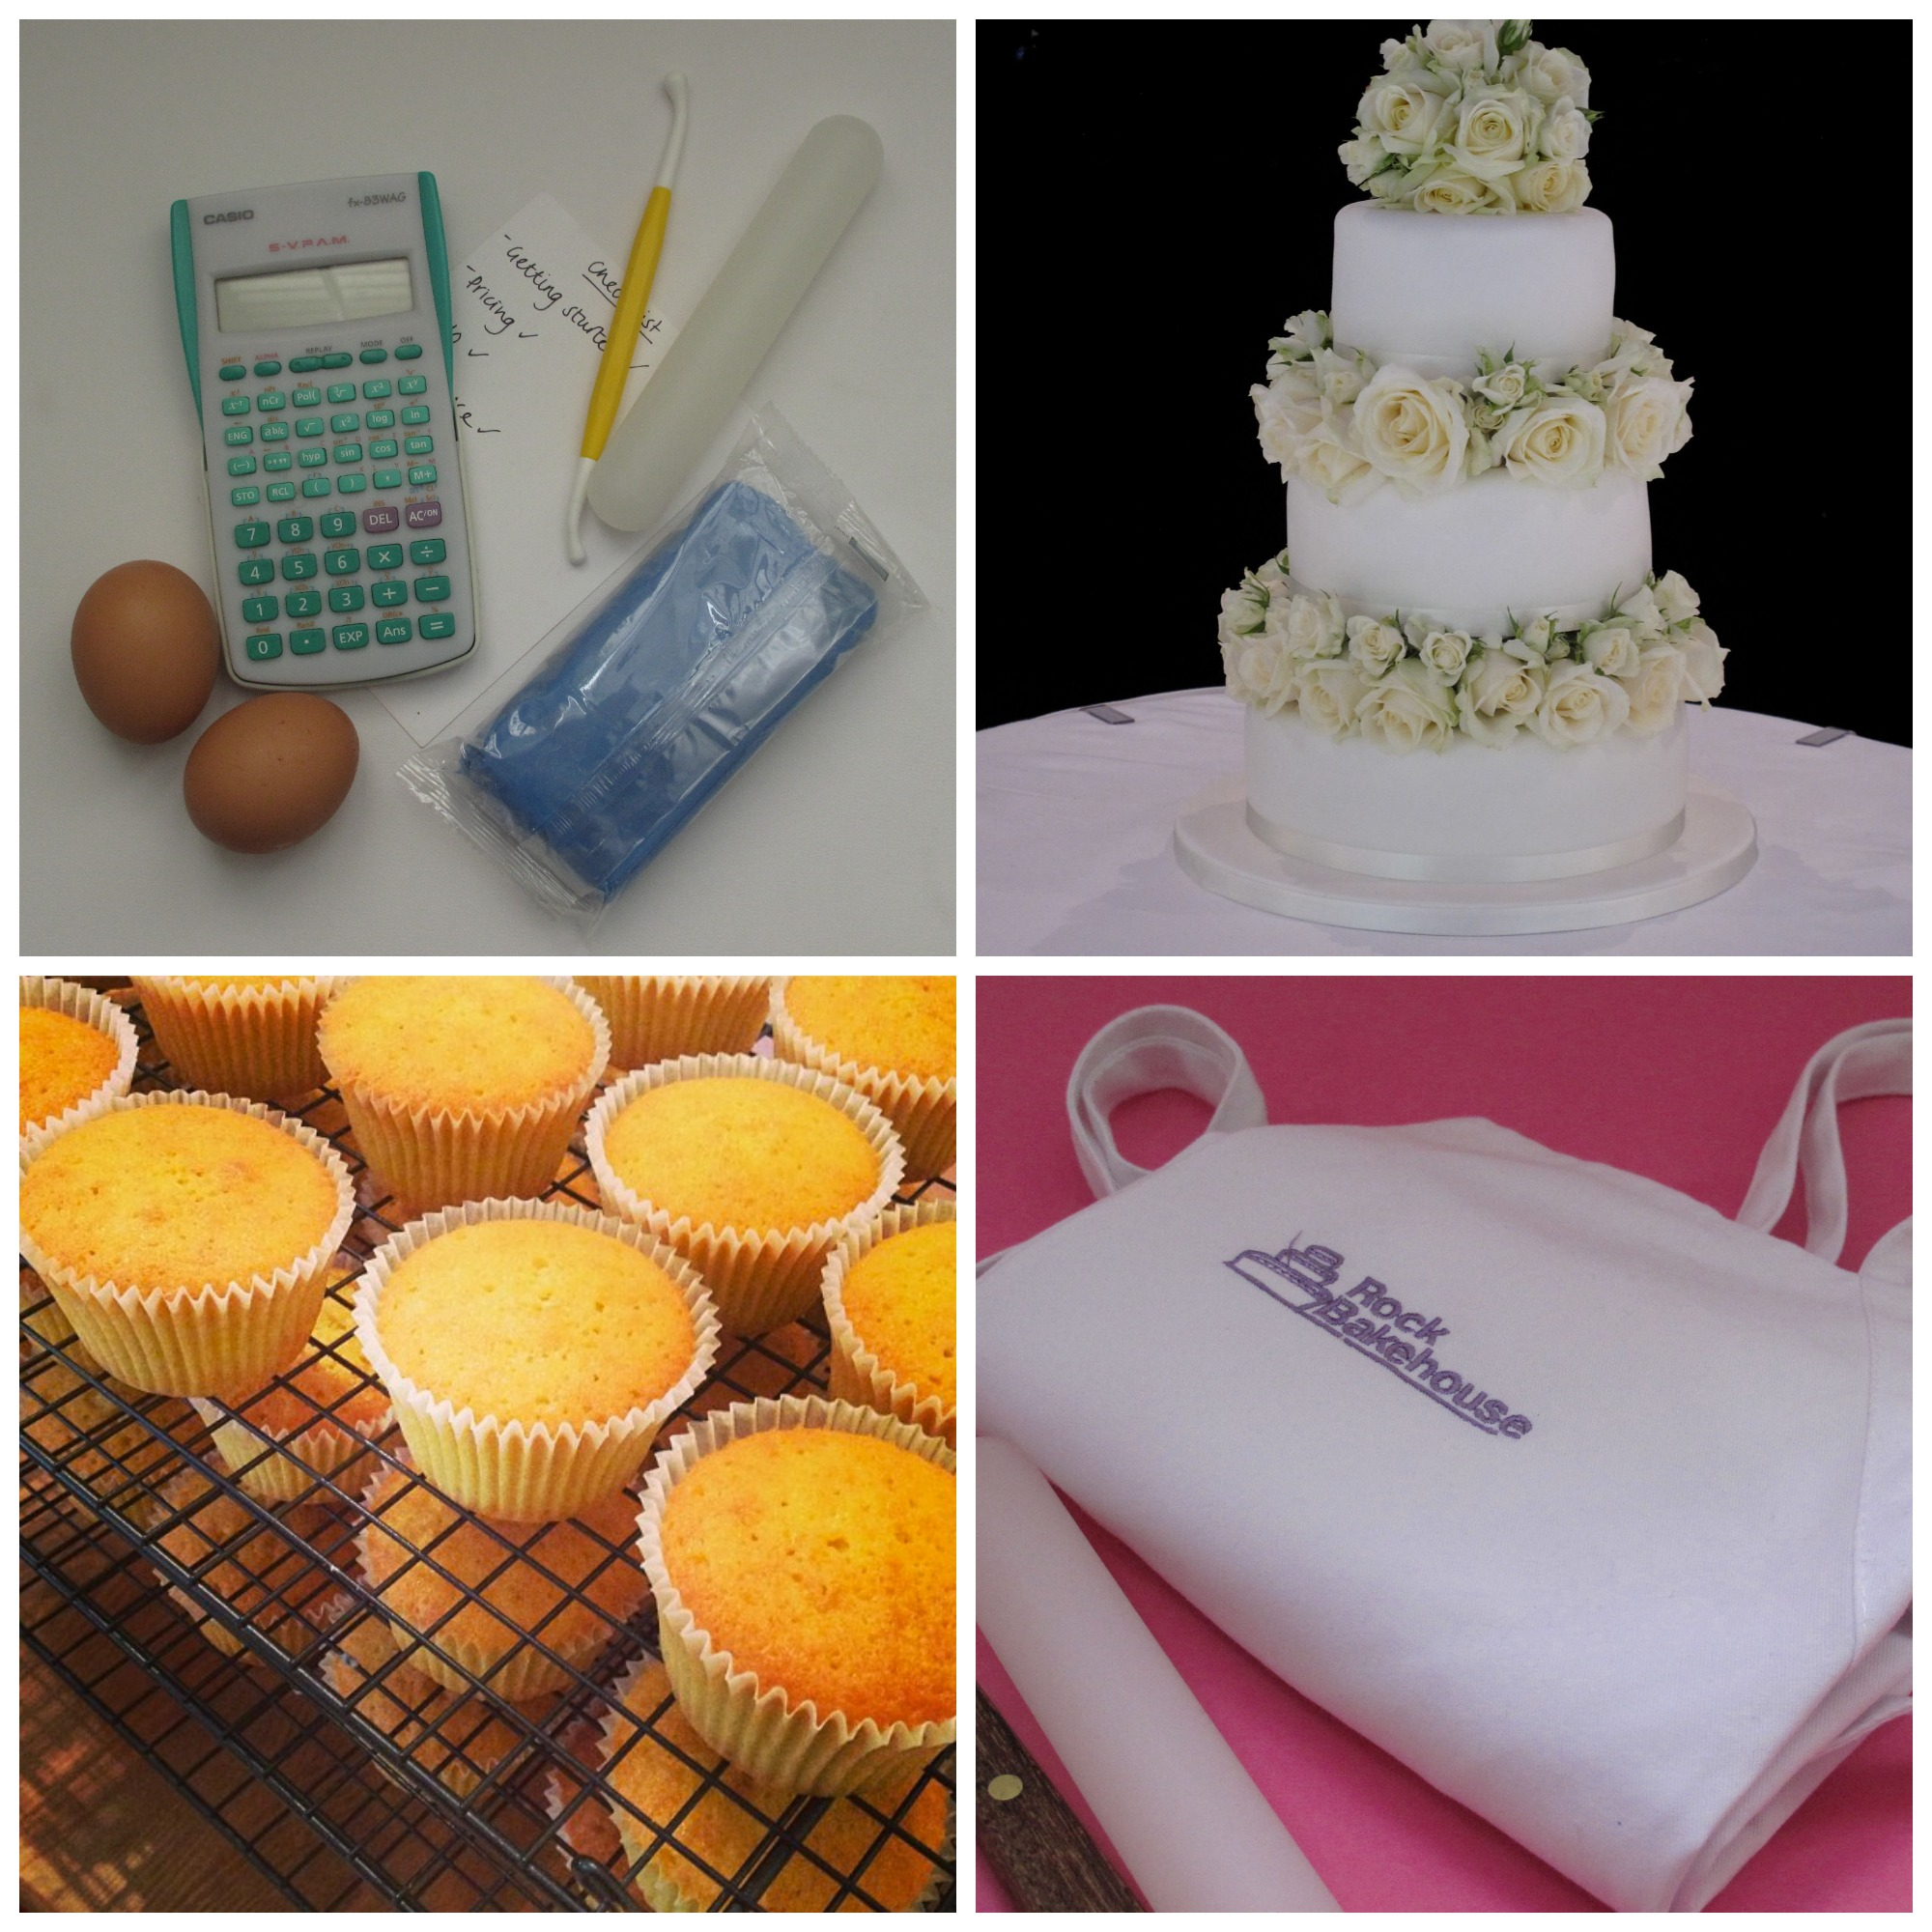 cake decorating at home business home decor cake decorating at home business